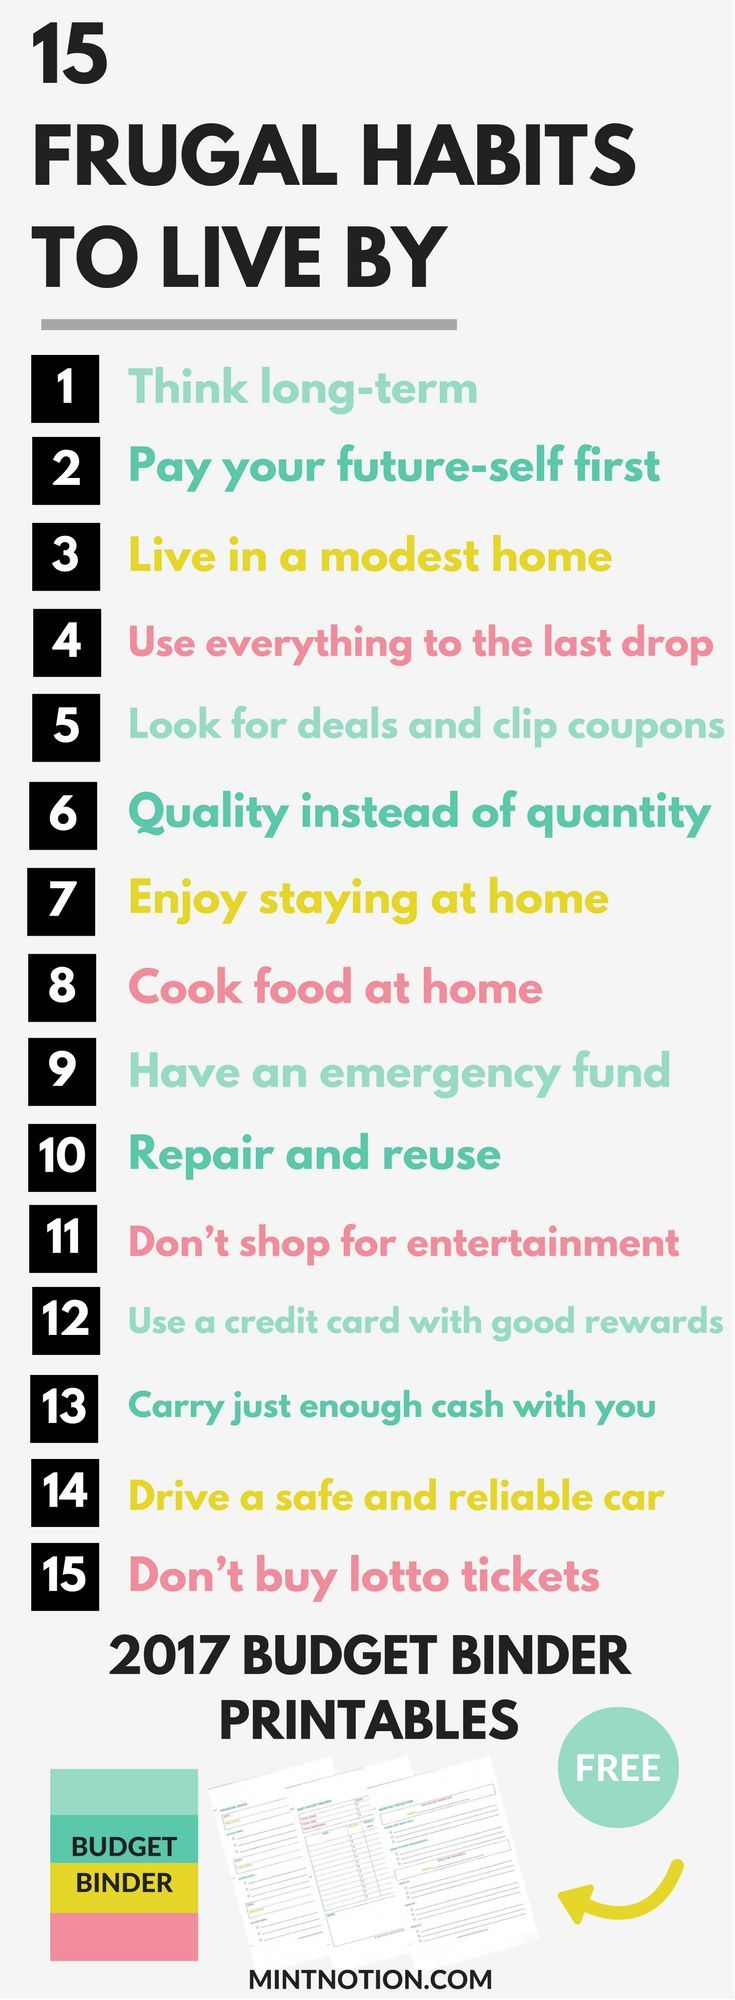 Frugal habits to help save money and live a happier life.